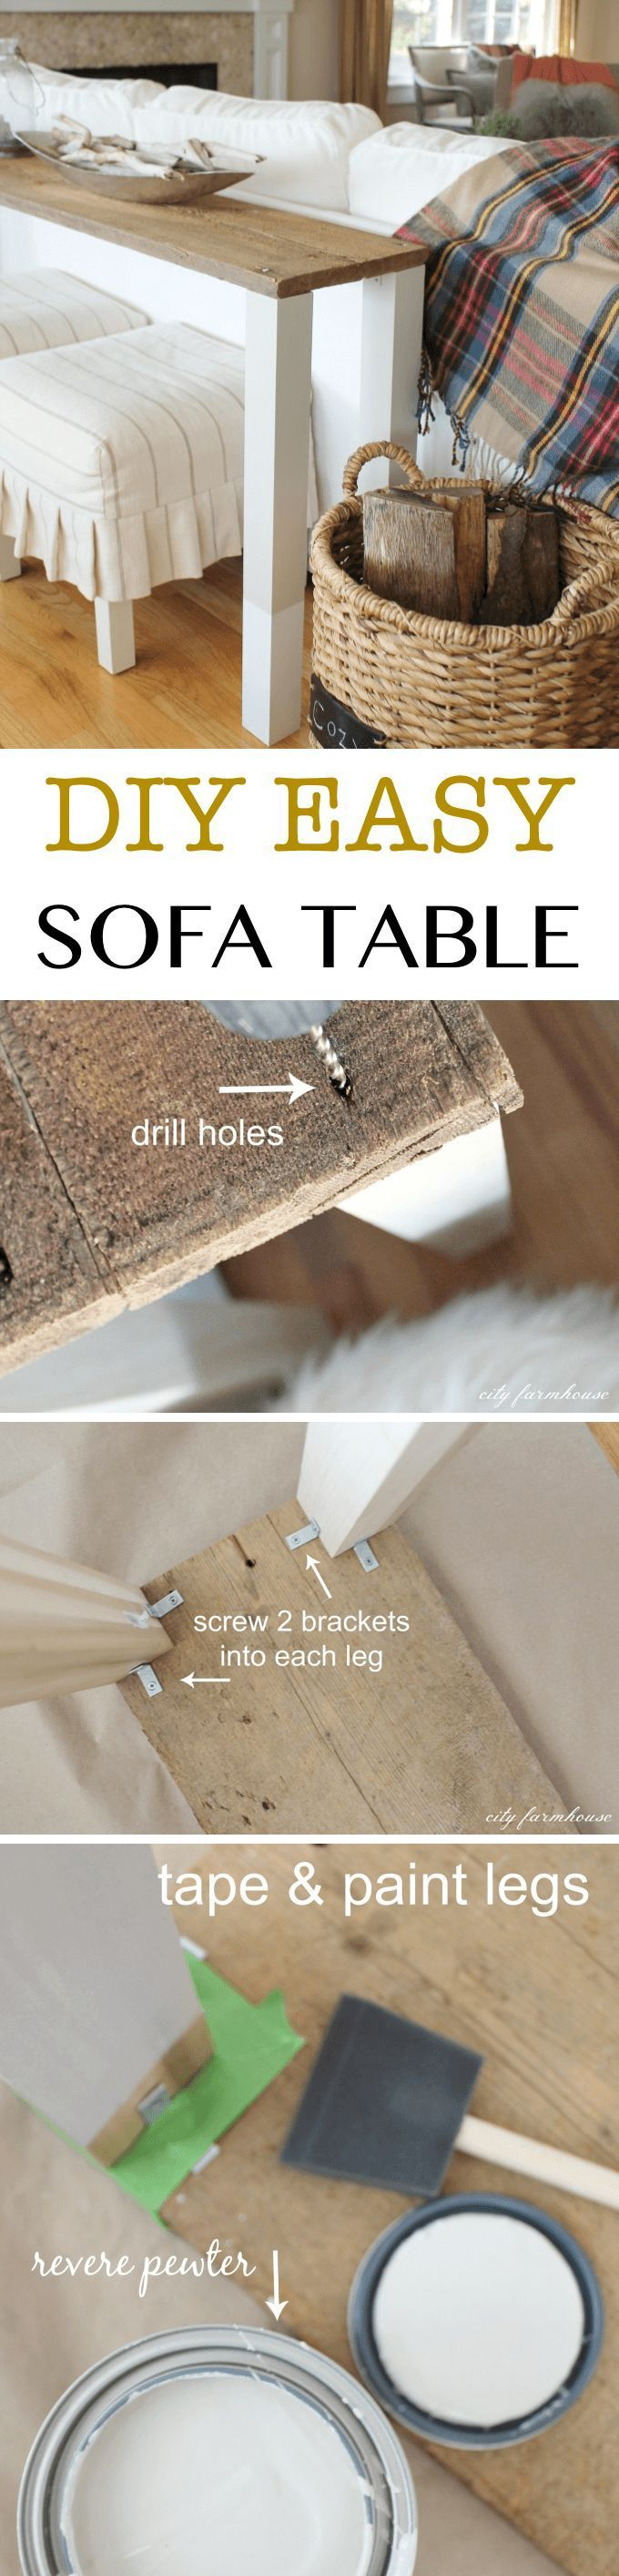 How to make a sofa table from 1 x 6 lumber - 15 Easy Diy Tables You Can Build Yourself